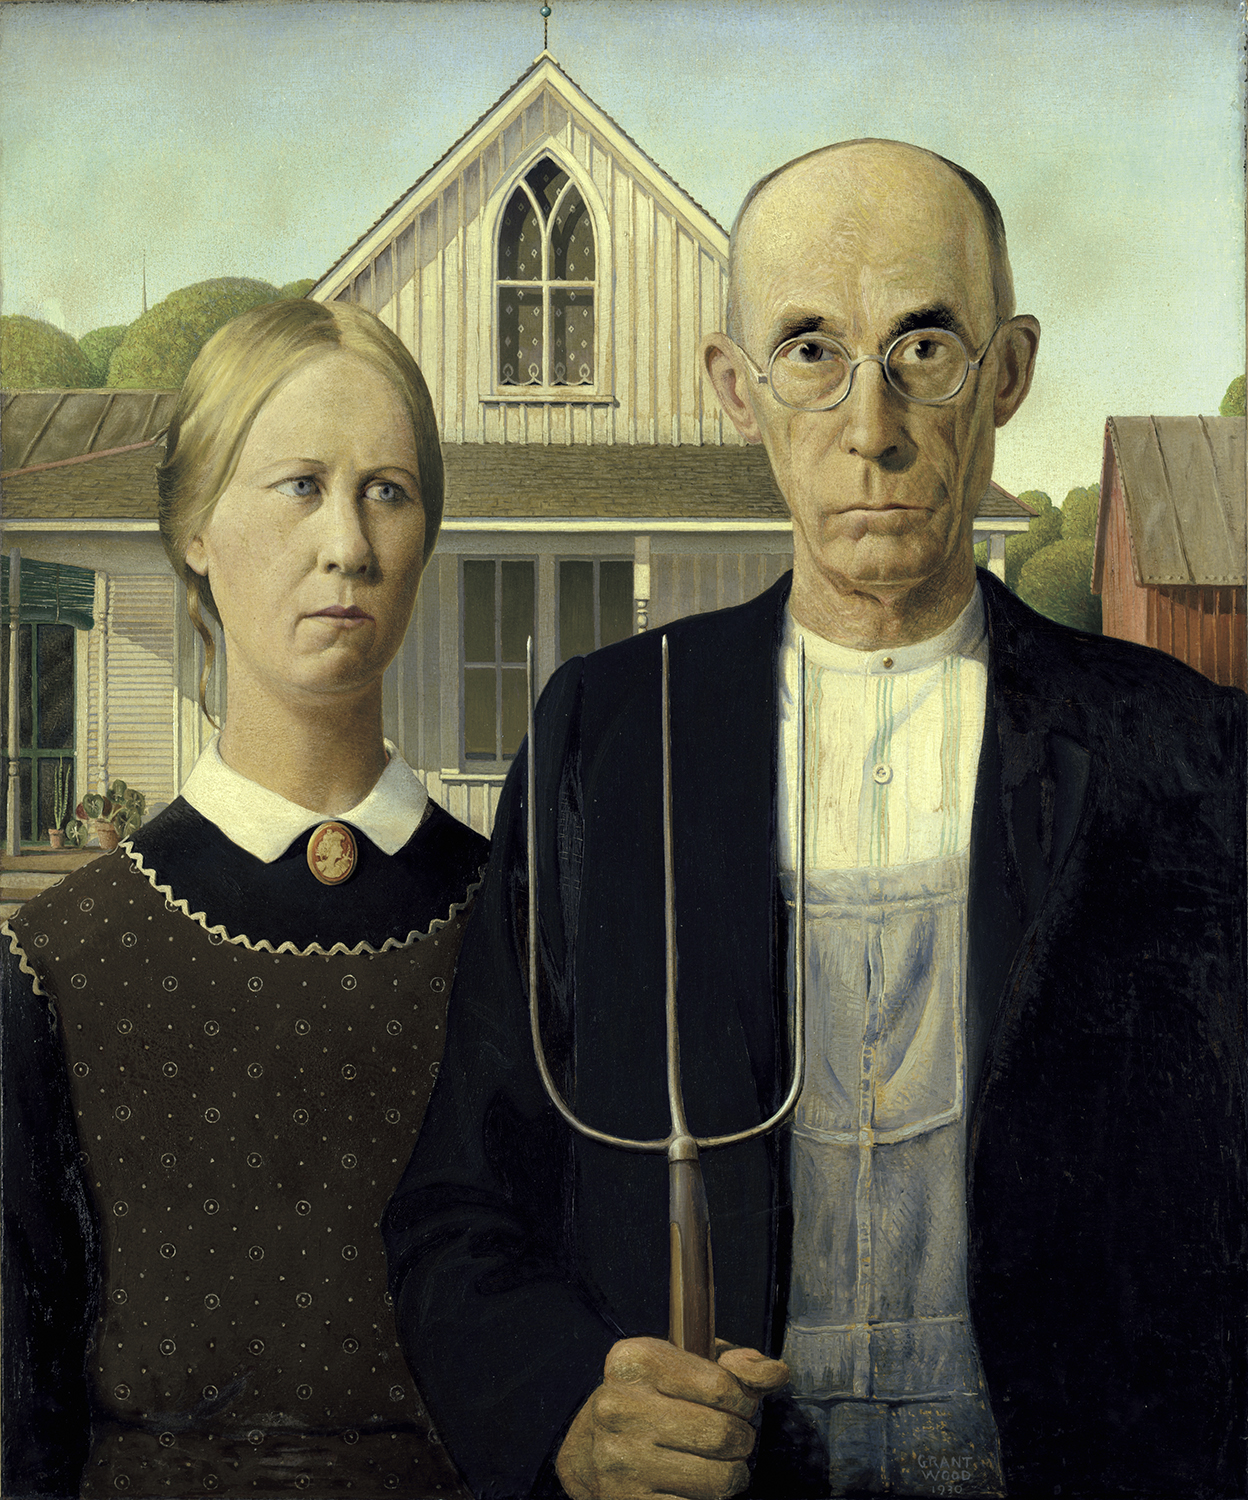 Grant Wood, American, 1891-1942. American Gothic, 1930. The Art Institute of Chicago. Friends of American Art Collection